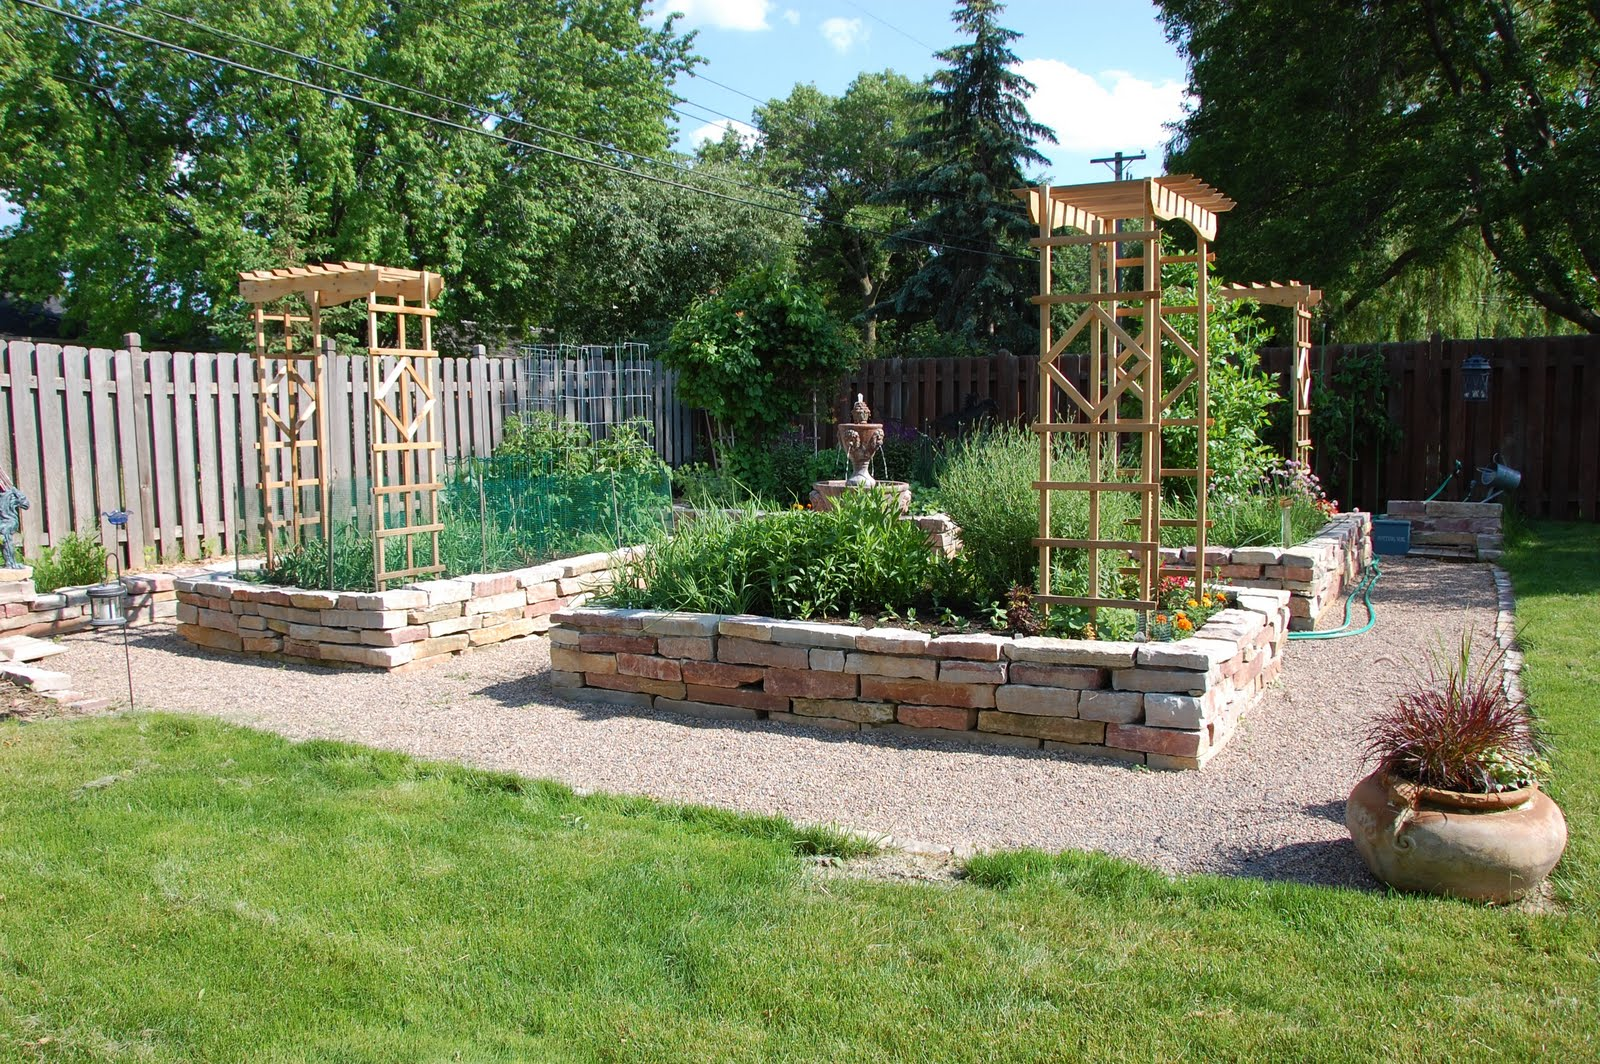 Vignette Design: Design Bucket List #3: Design A Beautiful Raised Bed  Vegetable Garden